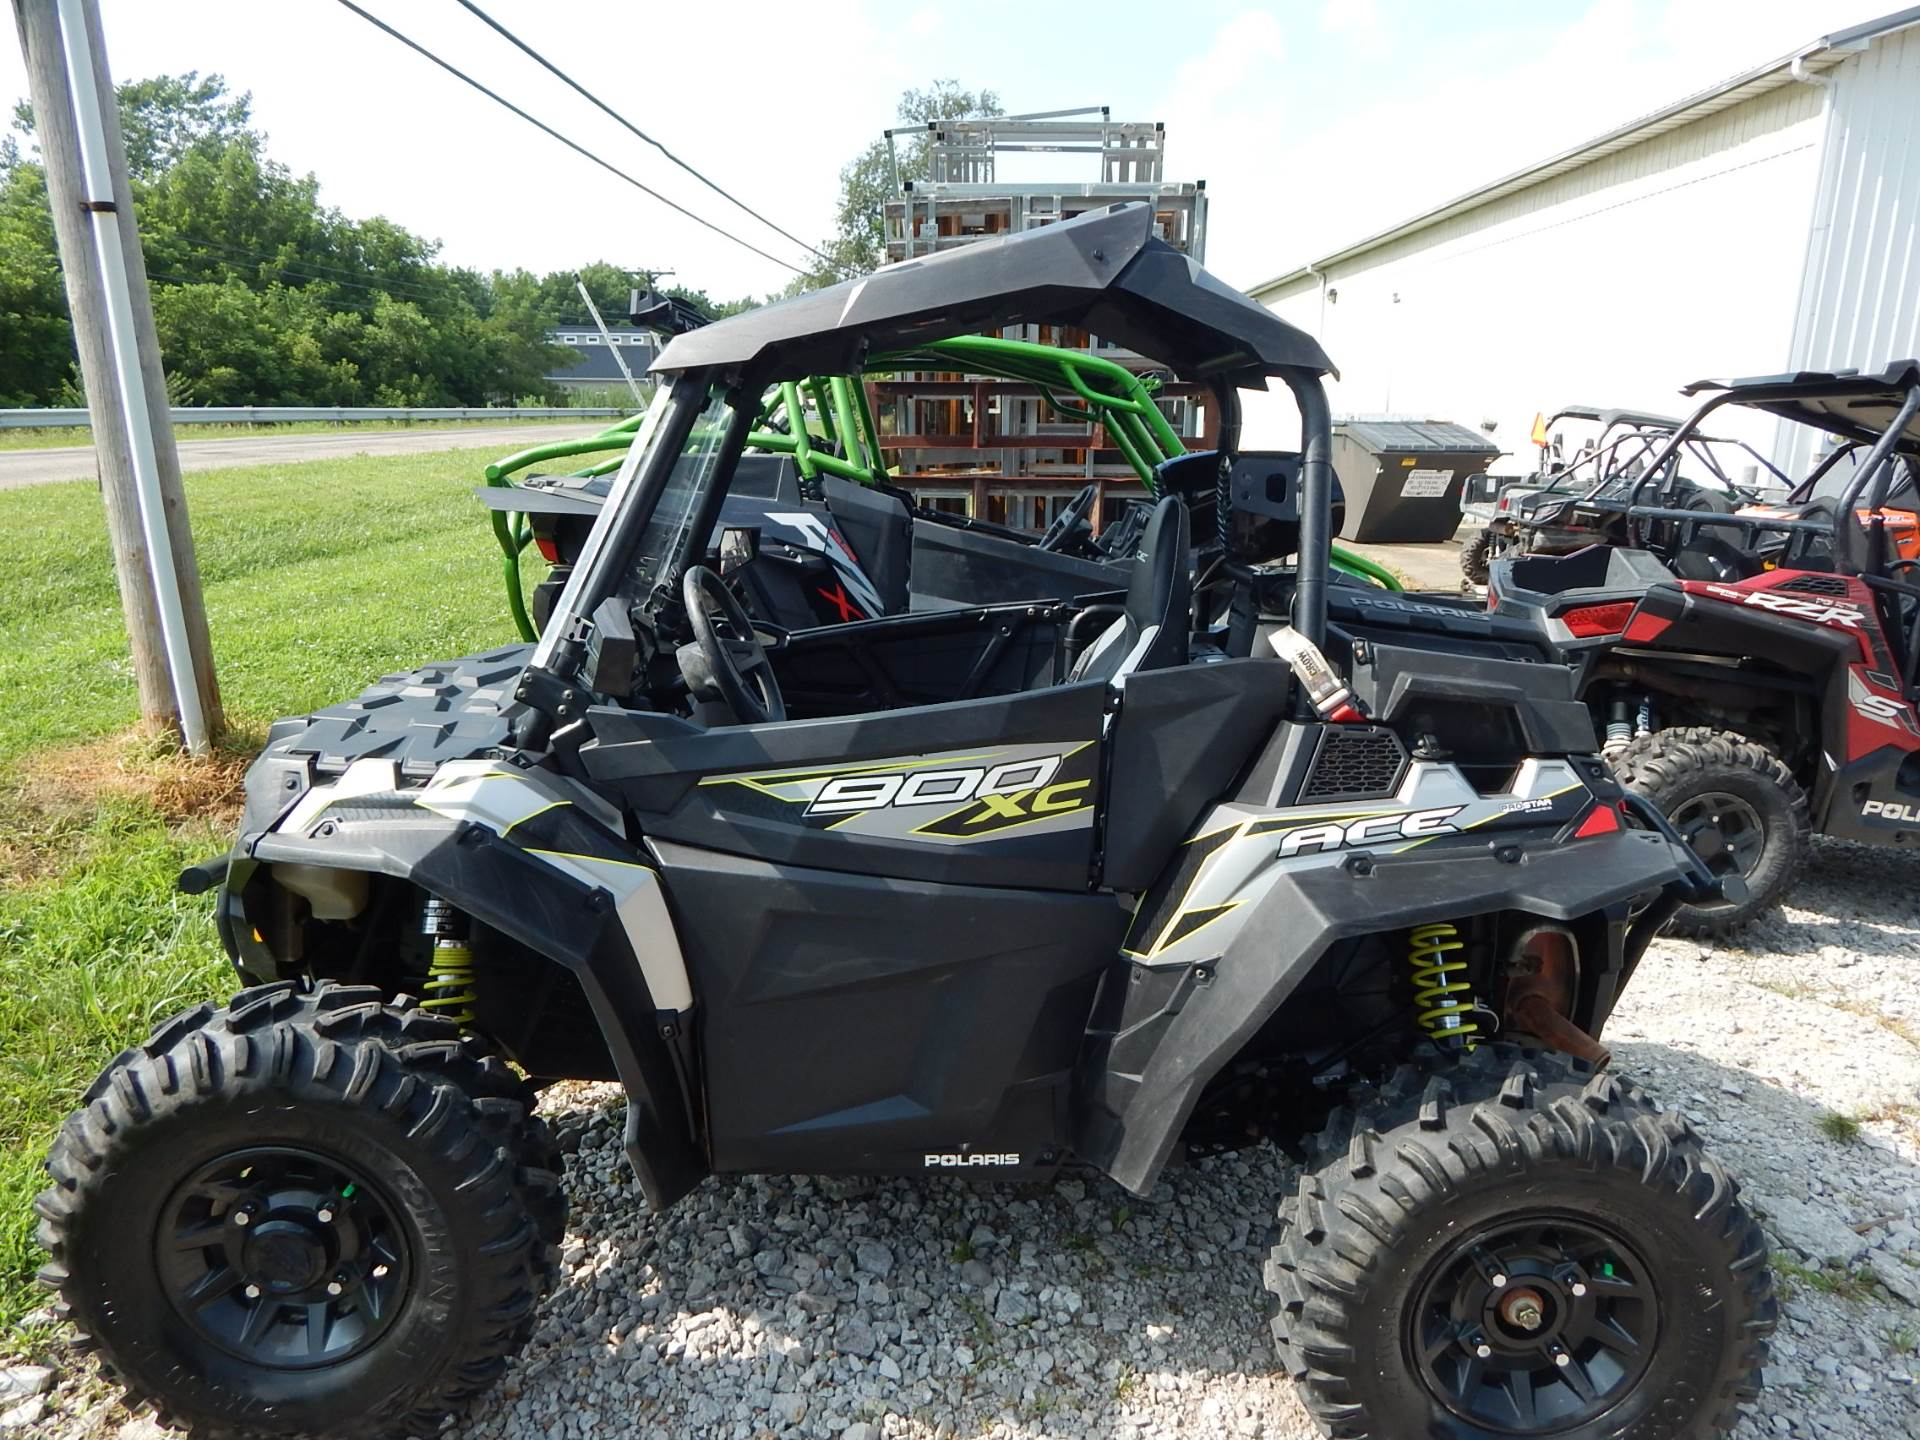 2017 Polaris Ace 900 XC in Carroll, Ohio - Photo 1